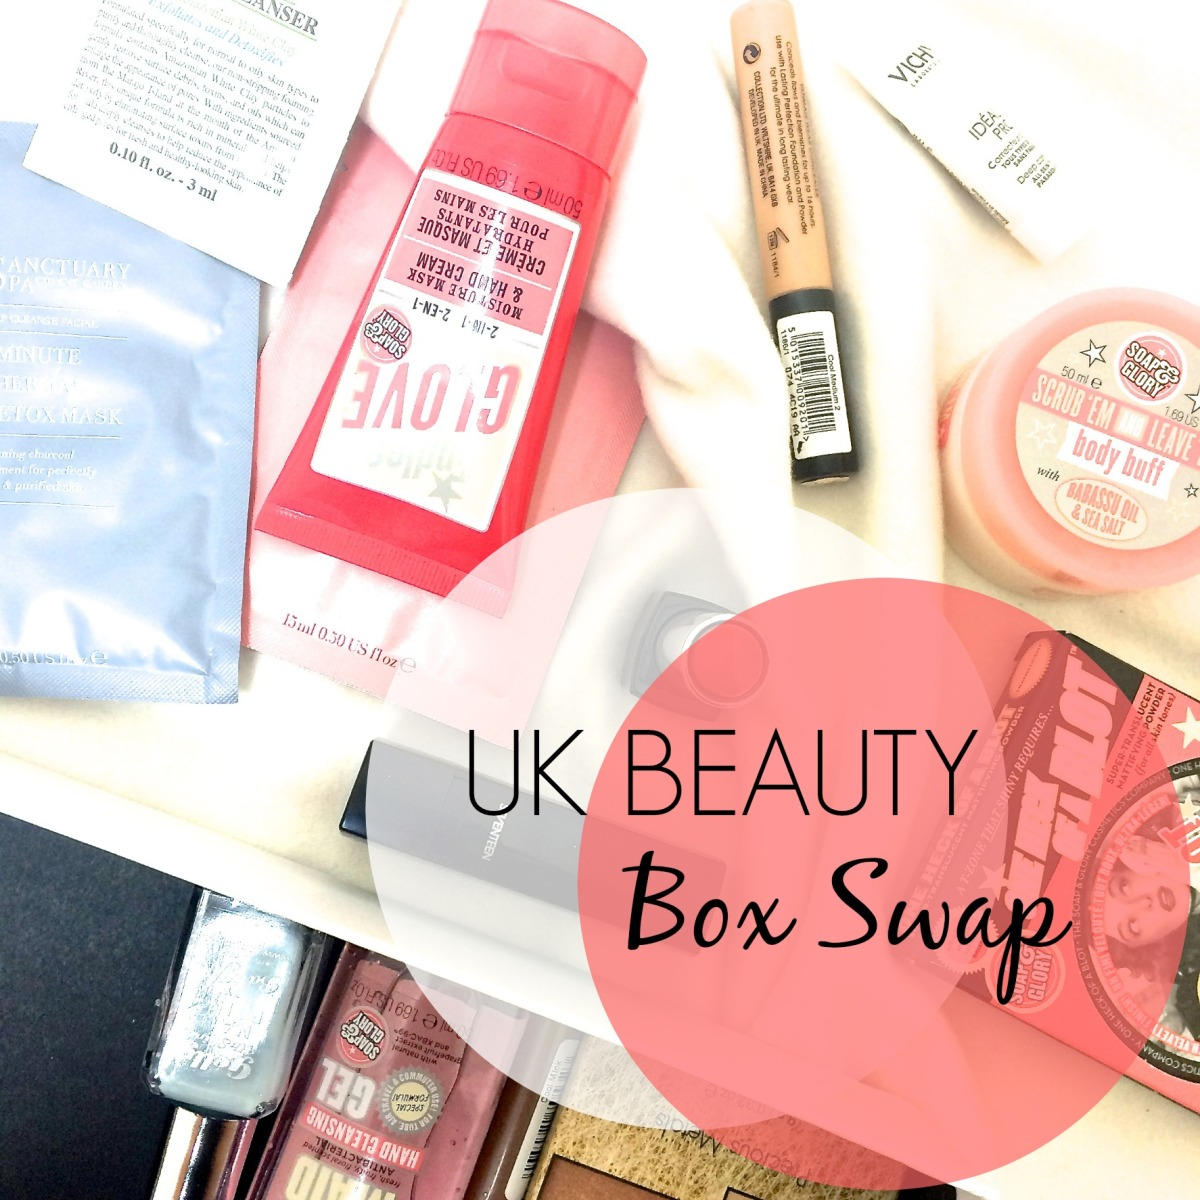 UK Beauty Box Swap